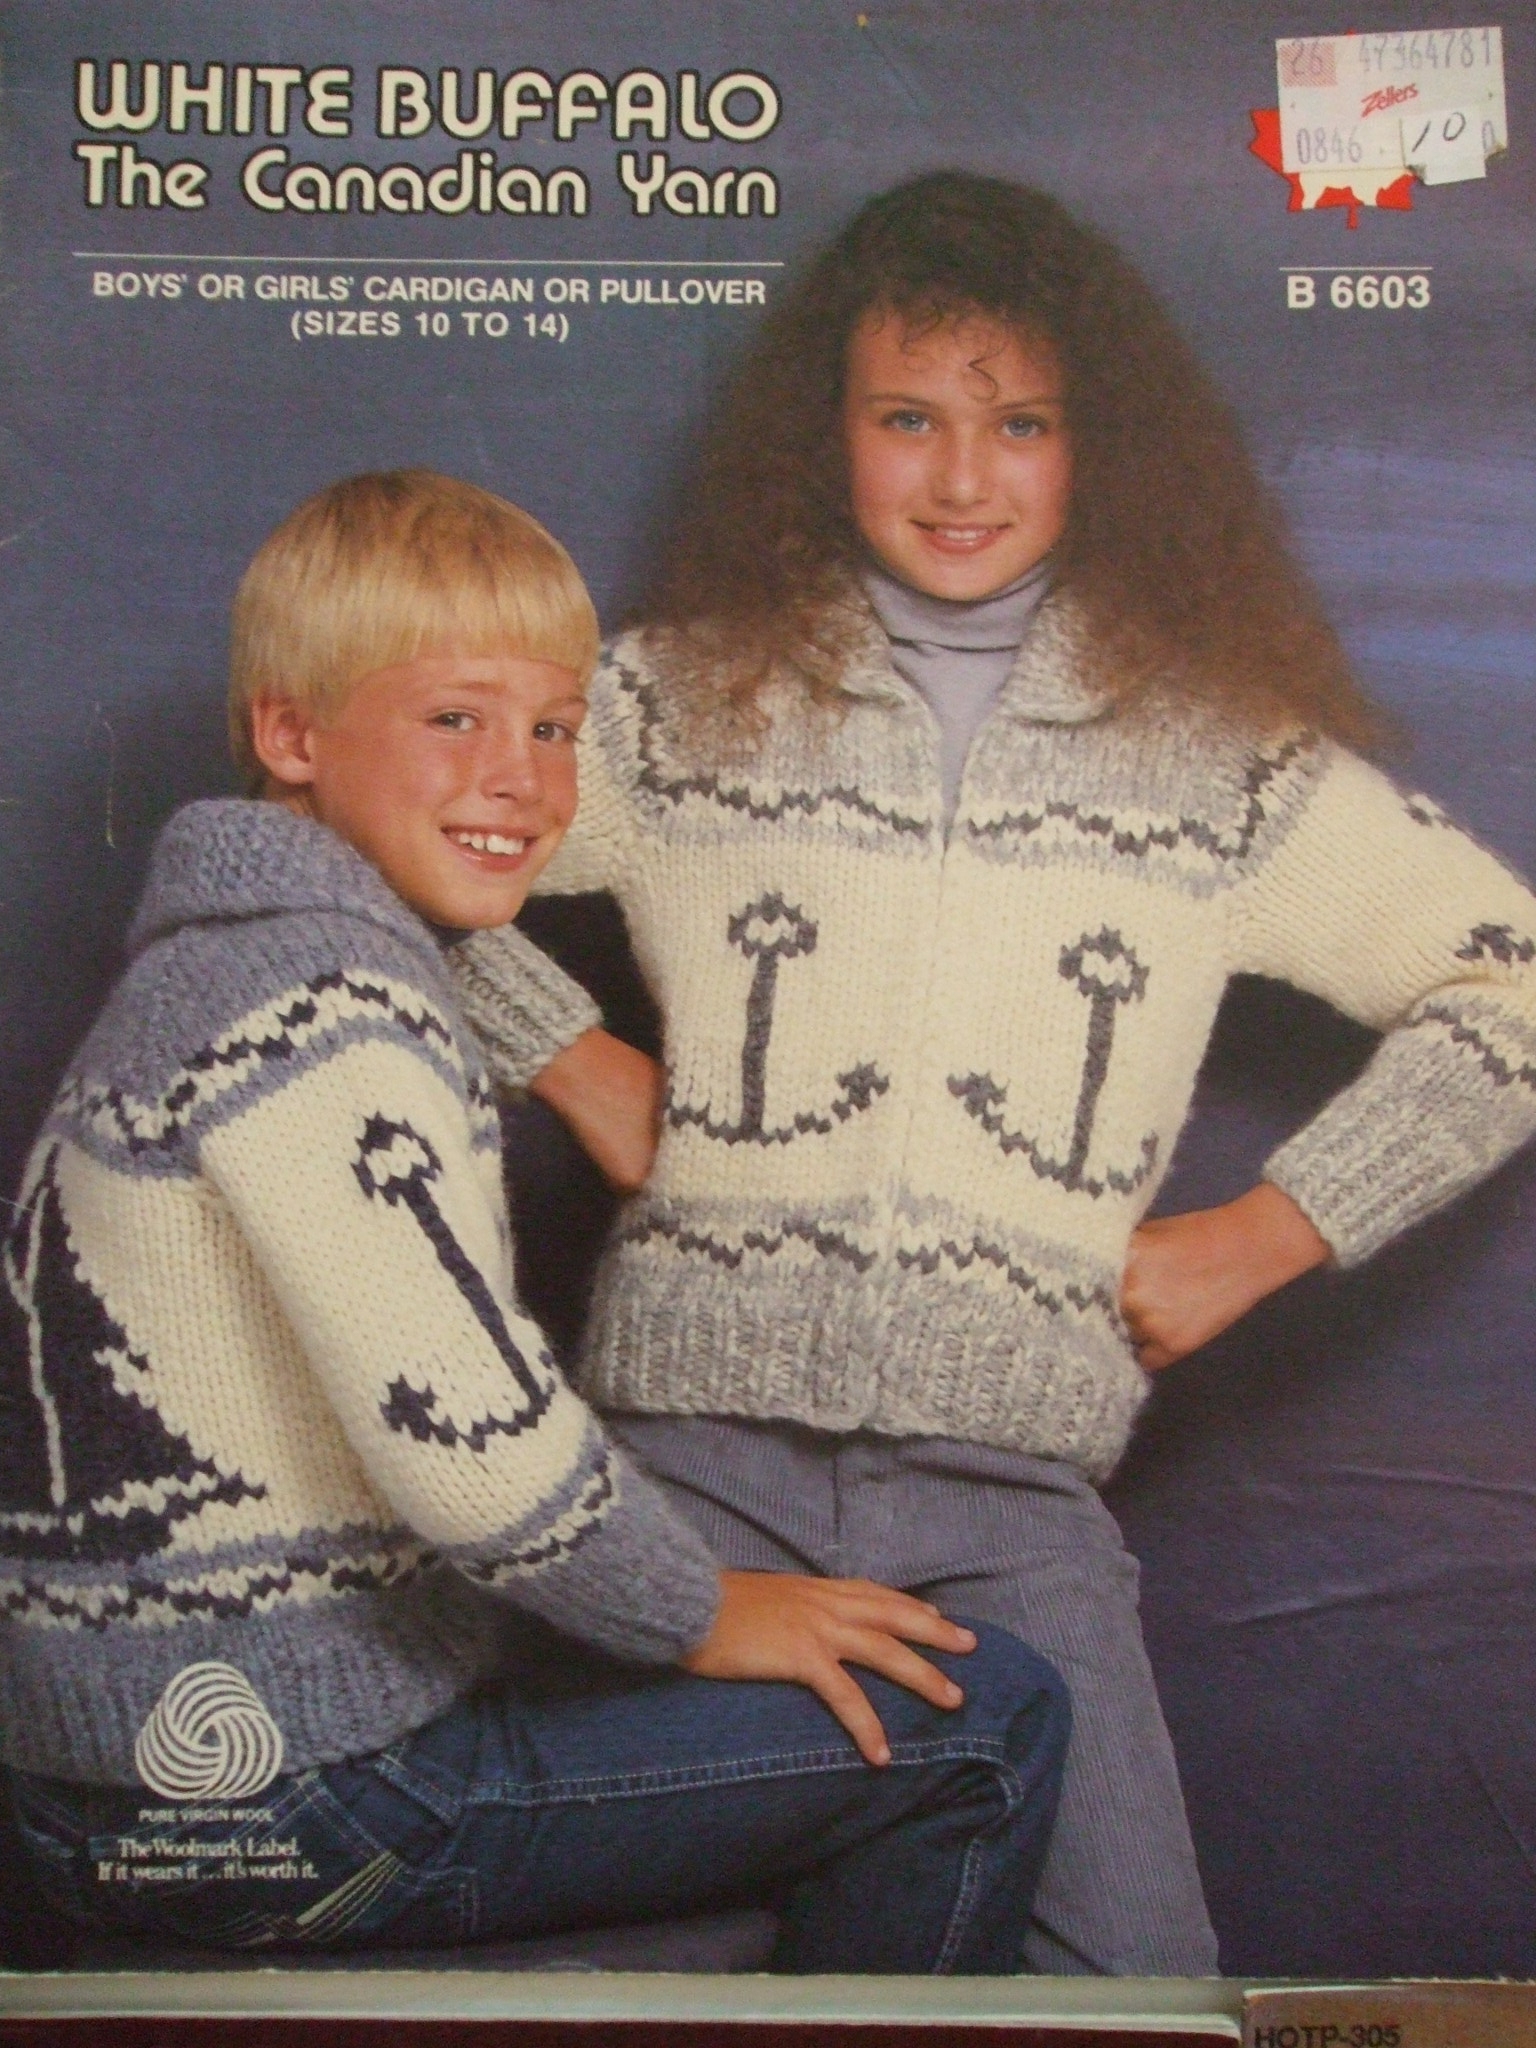 Cardigan Sweater Knitting Pattern White Buffalo B6603 Nautical Zippered Cardigan Sweater Anchor Sz 10 14 Knitting Pattern